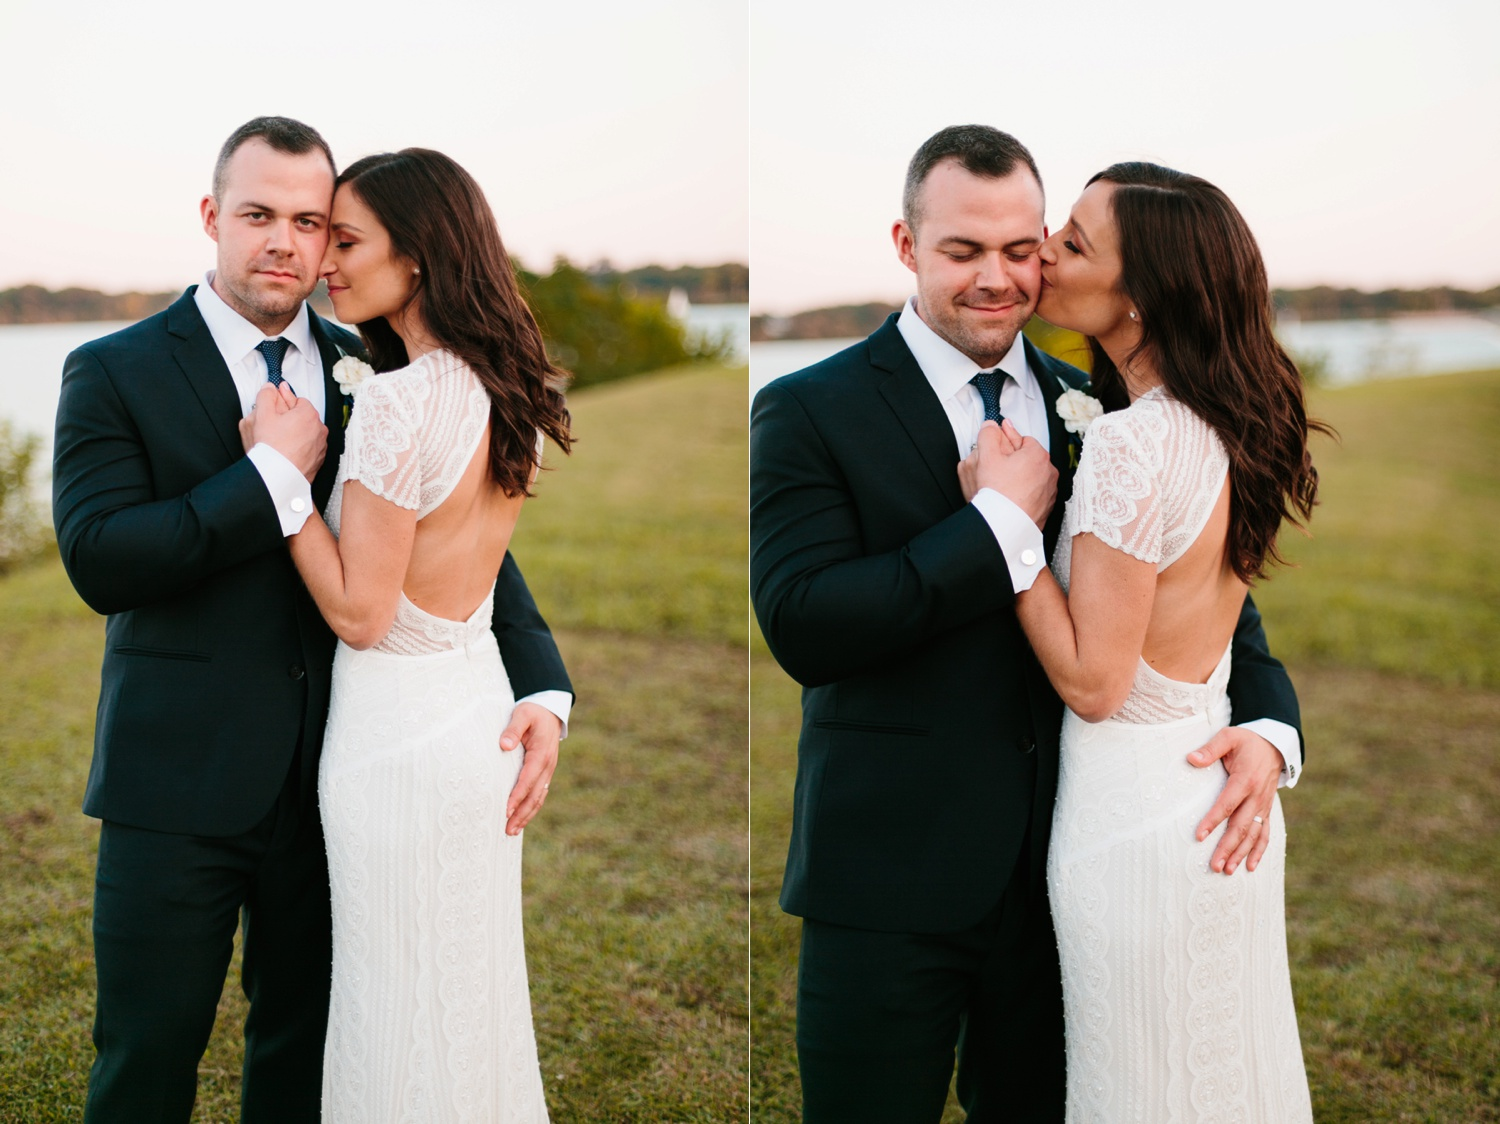 Kadee + Tyler | a raw, emotional wedding at the Filter Building on White Rock Lake in Dallas, TX by North Texas Wedding Photographer, Rachel Meagan Photography 177